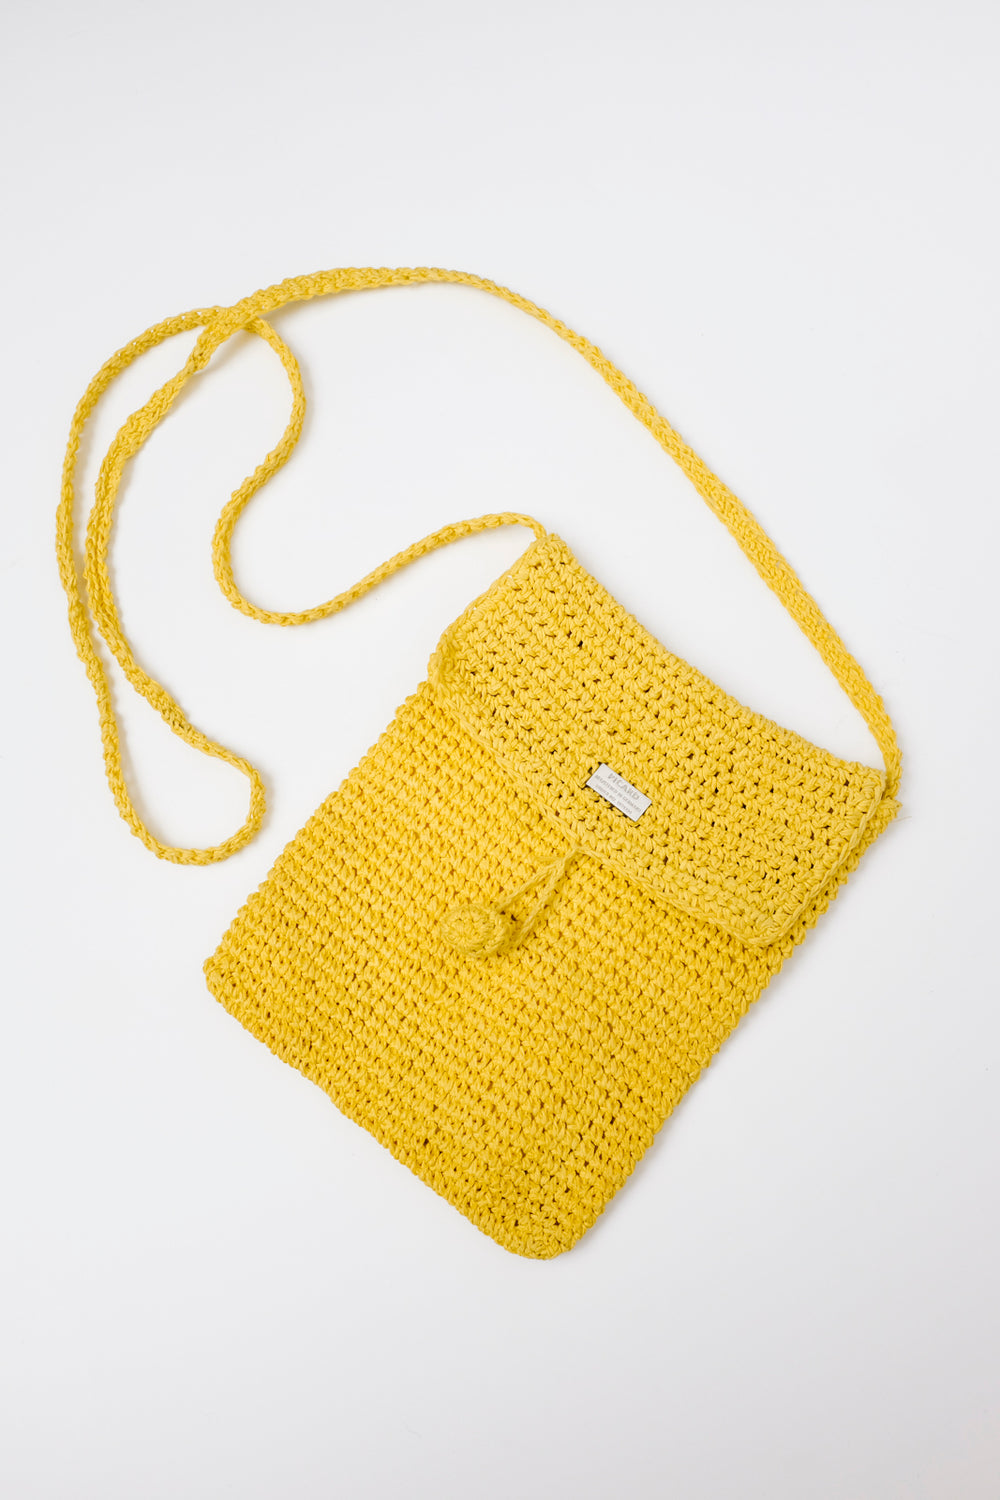 0001_YELLOW PICARD CROCHET BAG